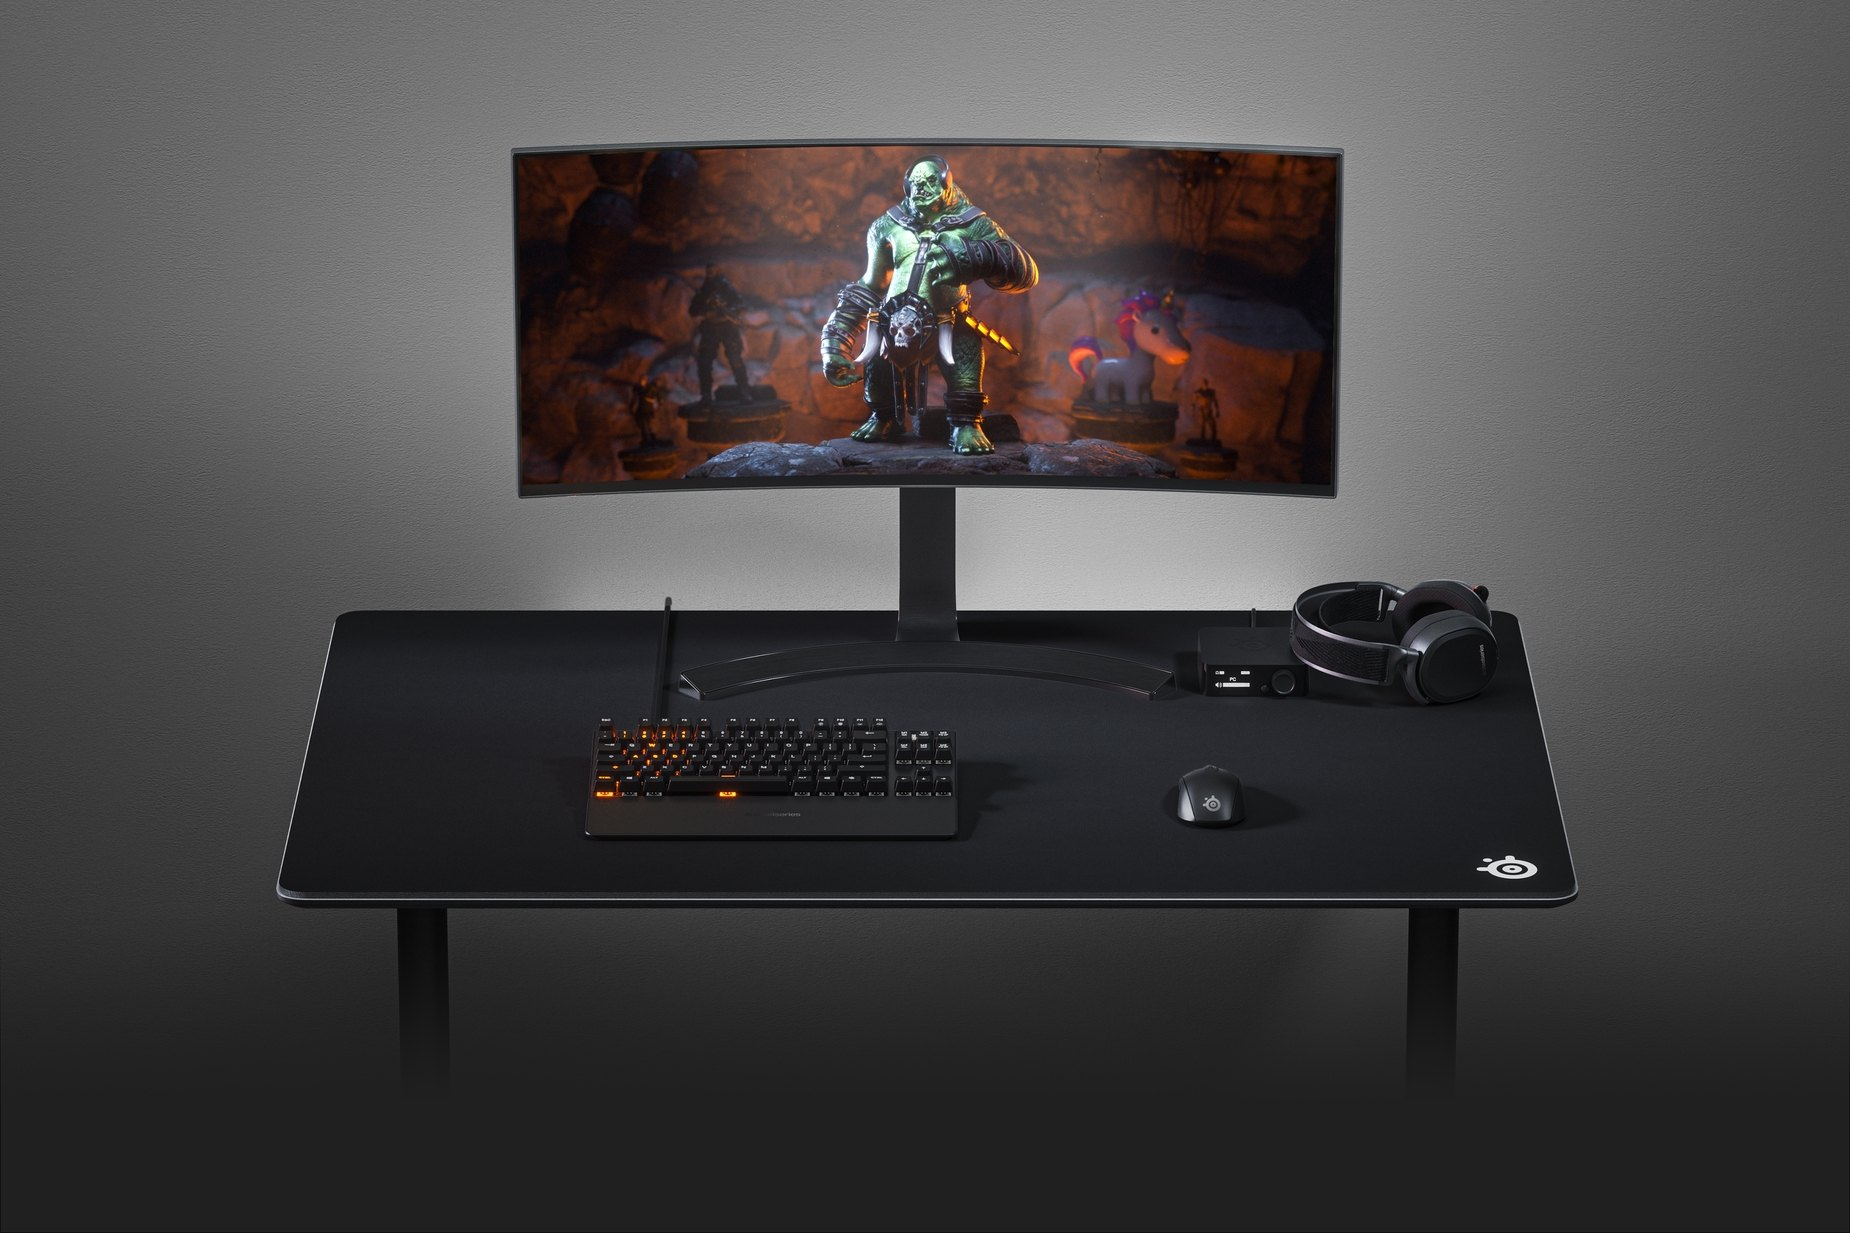 SteelSeries 4XL gaming mousepad on a desk with a monitor, headset, mouse, and keyboard